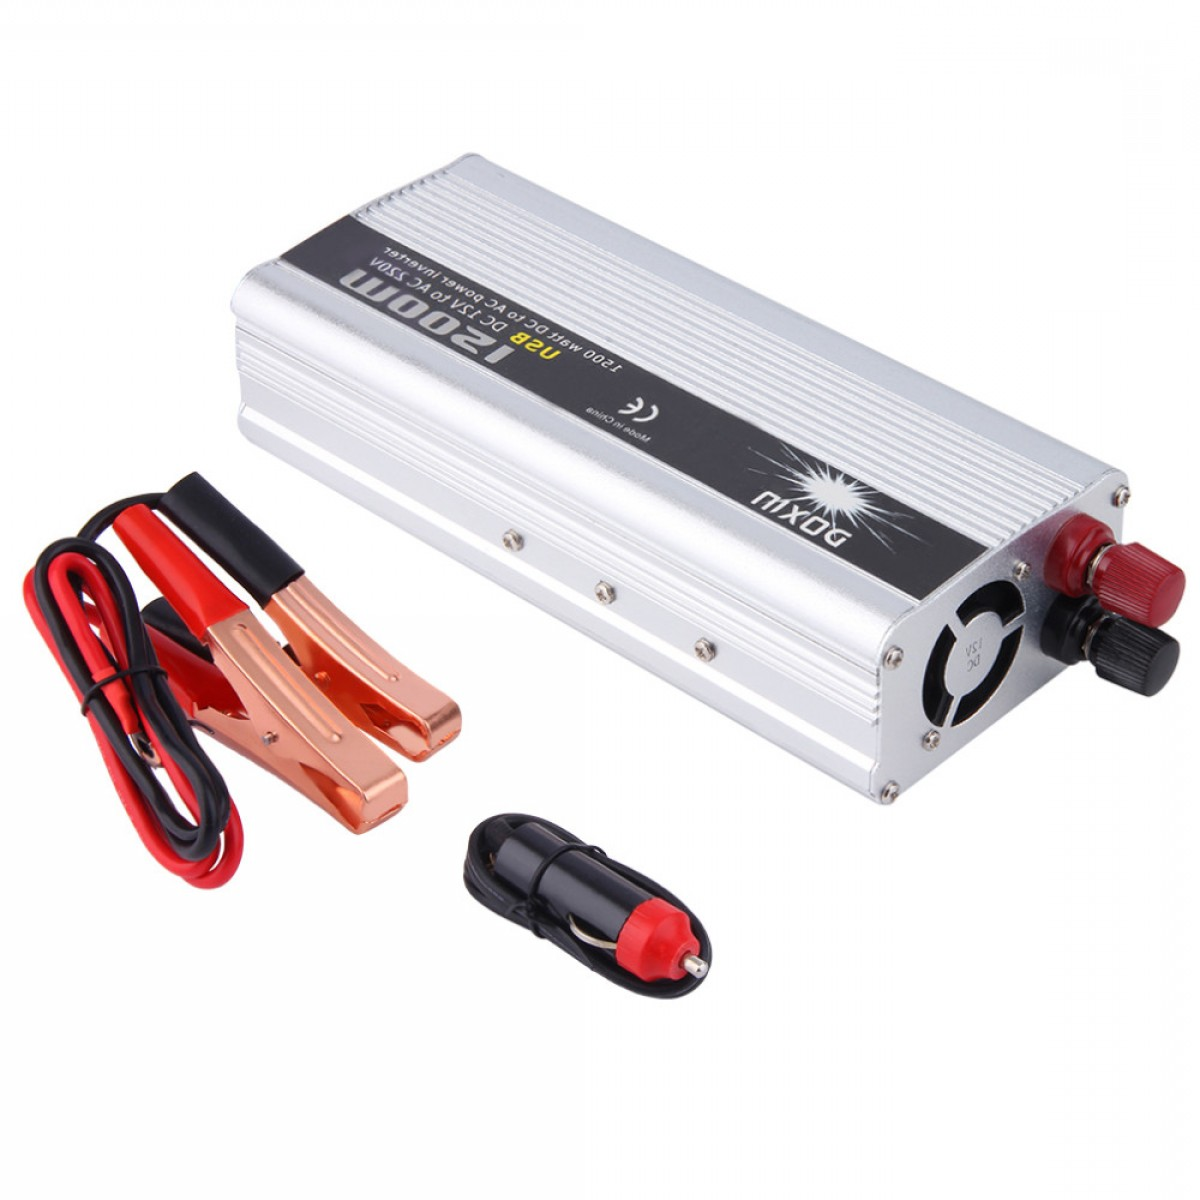 Vector Power Inverter 1500: Vector Vecd Watt Dc To Ac Power Inverter With F